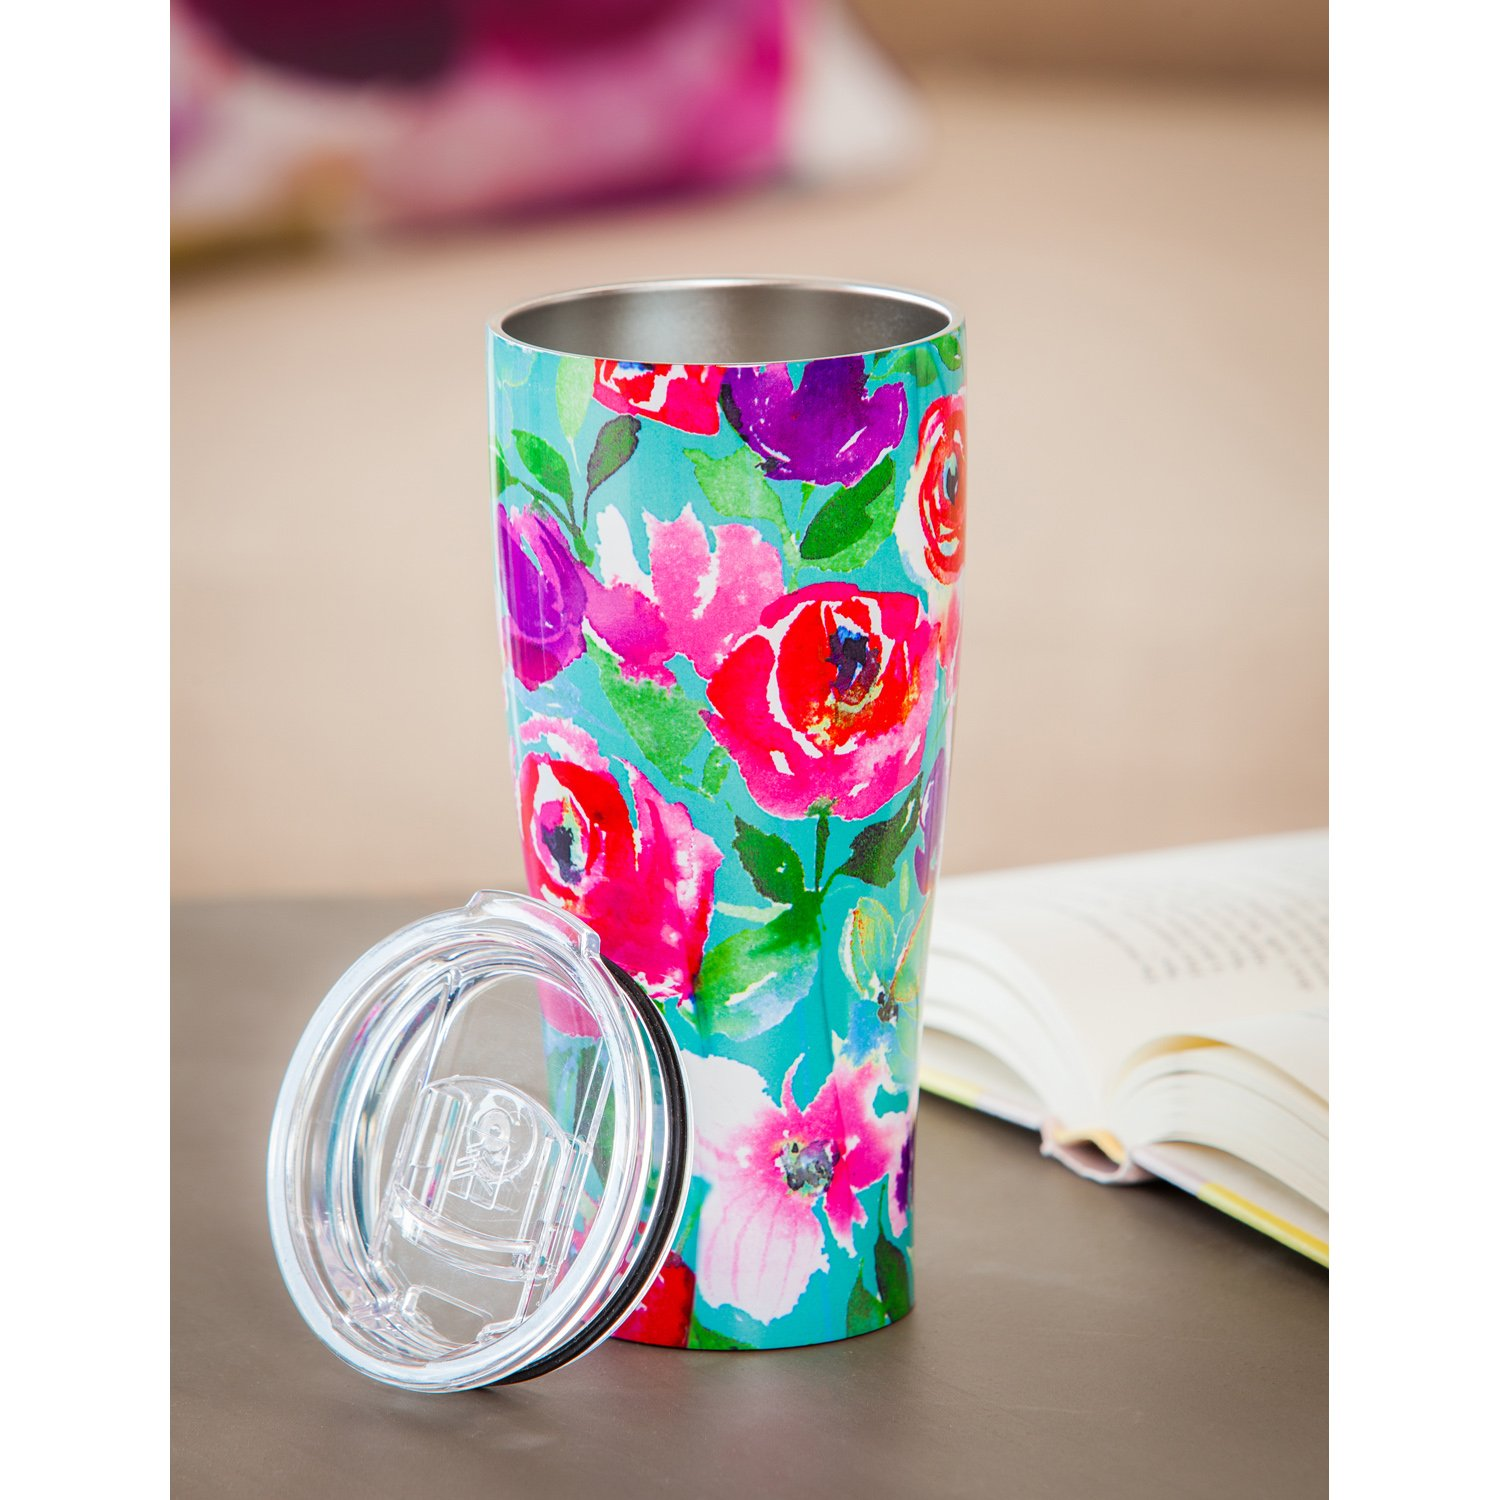 Cypress Home Boho Floral Party Stainless Steel Hot Beverage Travel Cup, 17 ounces by Cypress Home (Image #2)